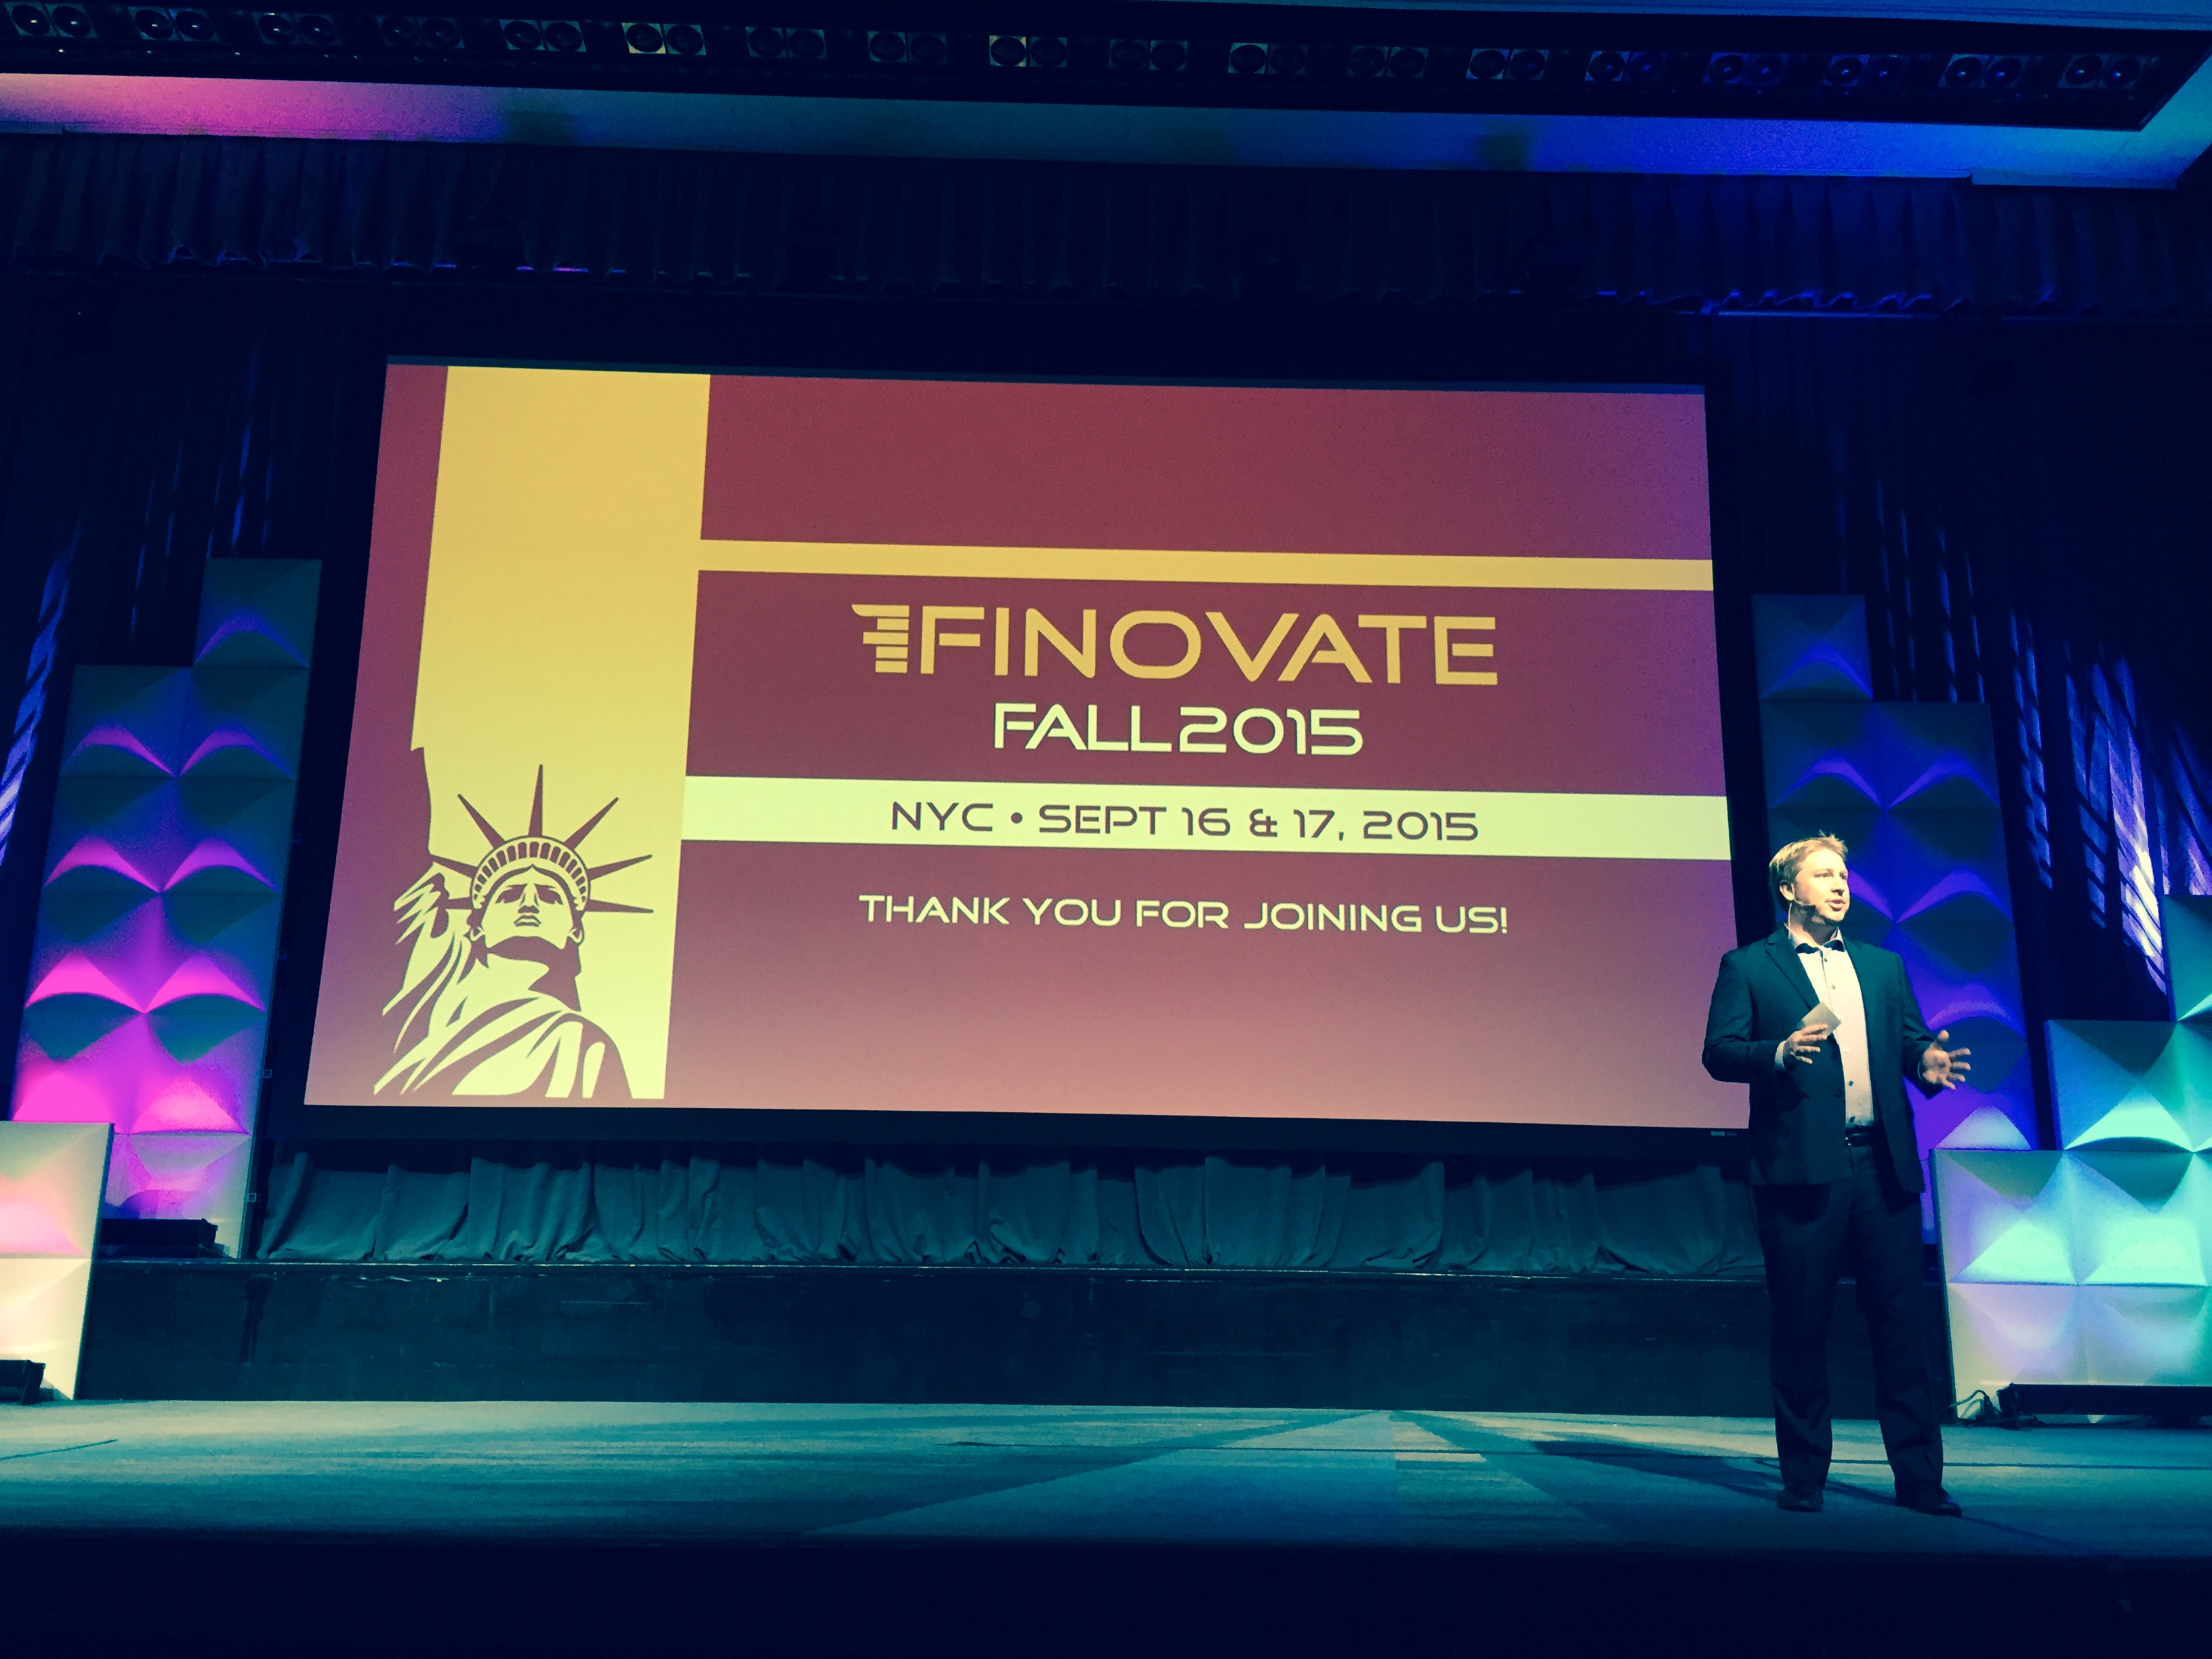 finovate fall